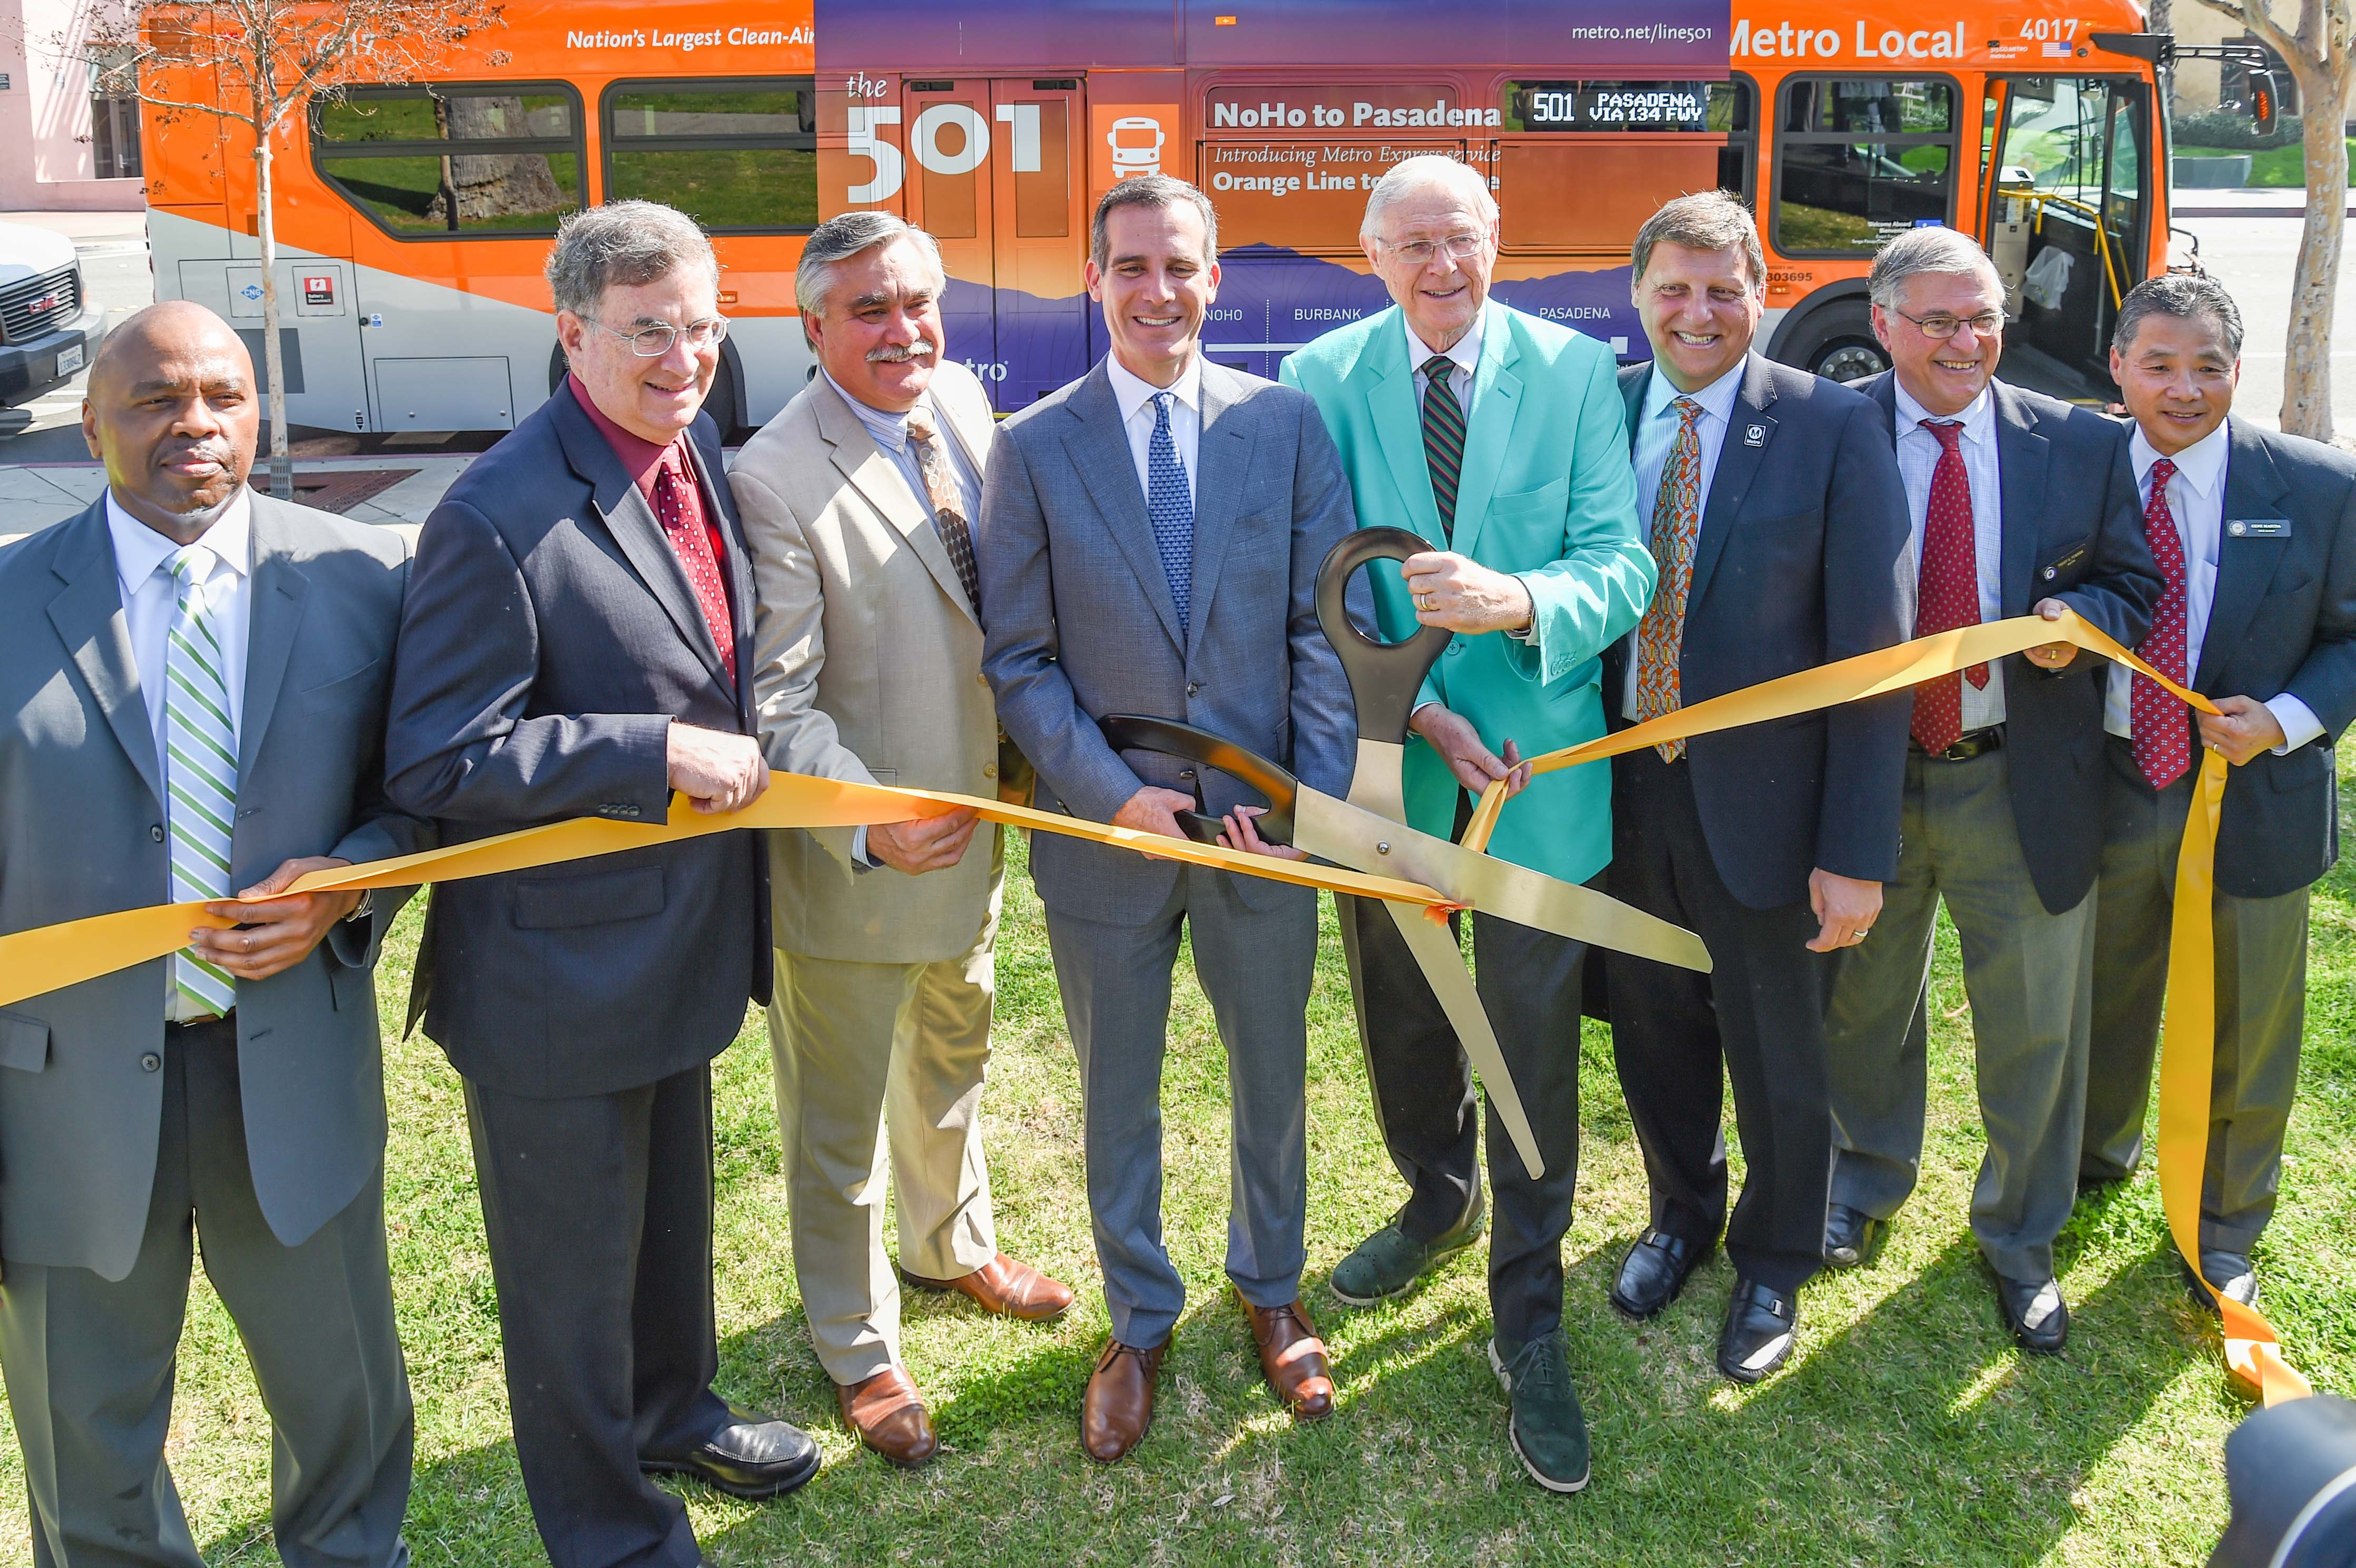 Metro Board Members and other officials broke out the big scissors this morning at the Pasadena Del Mar Station for the new NoHo-Pasadena Express. Photo by Luis Inzunza/Metro.